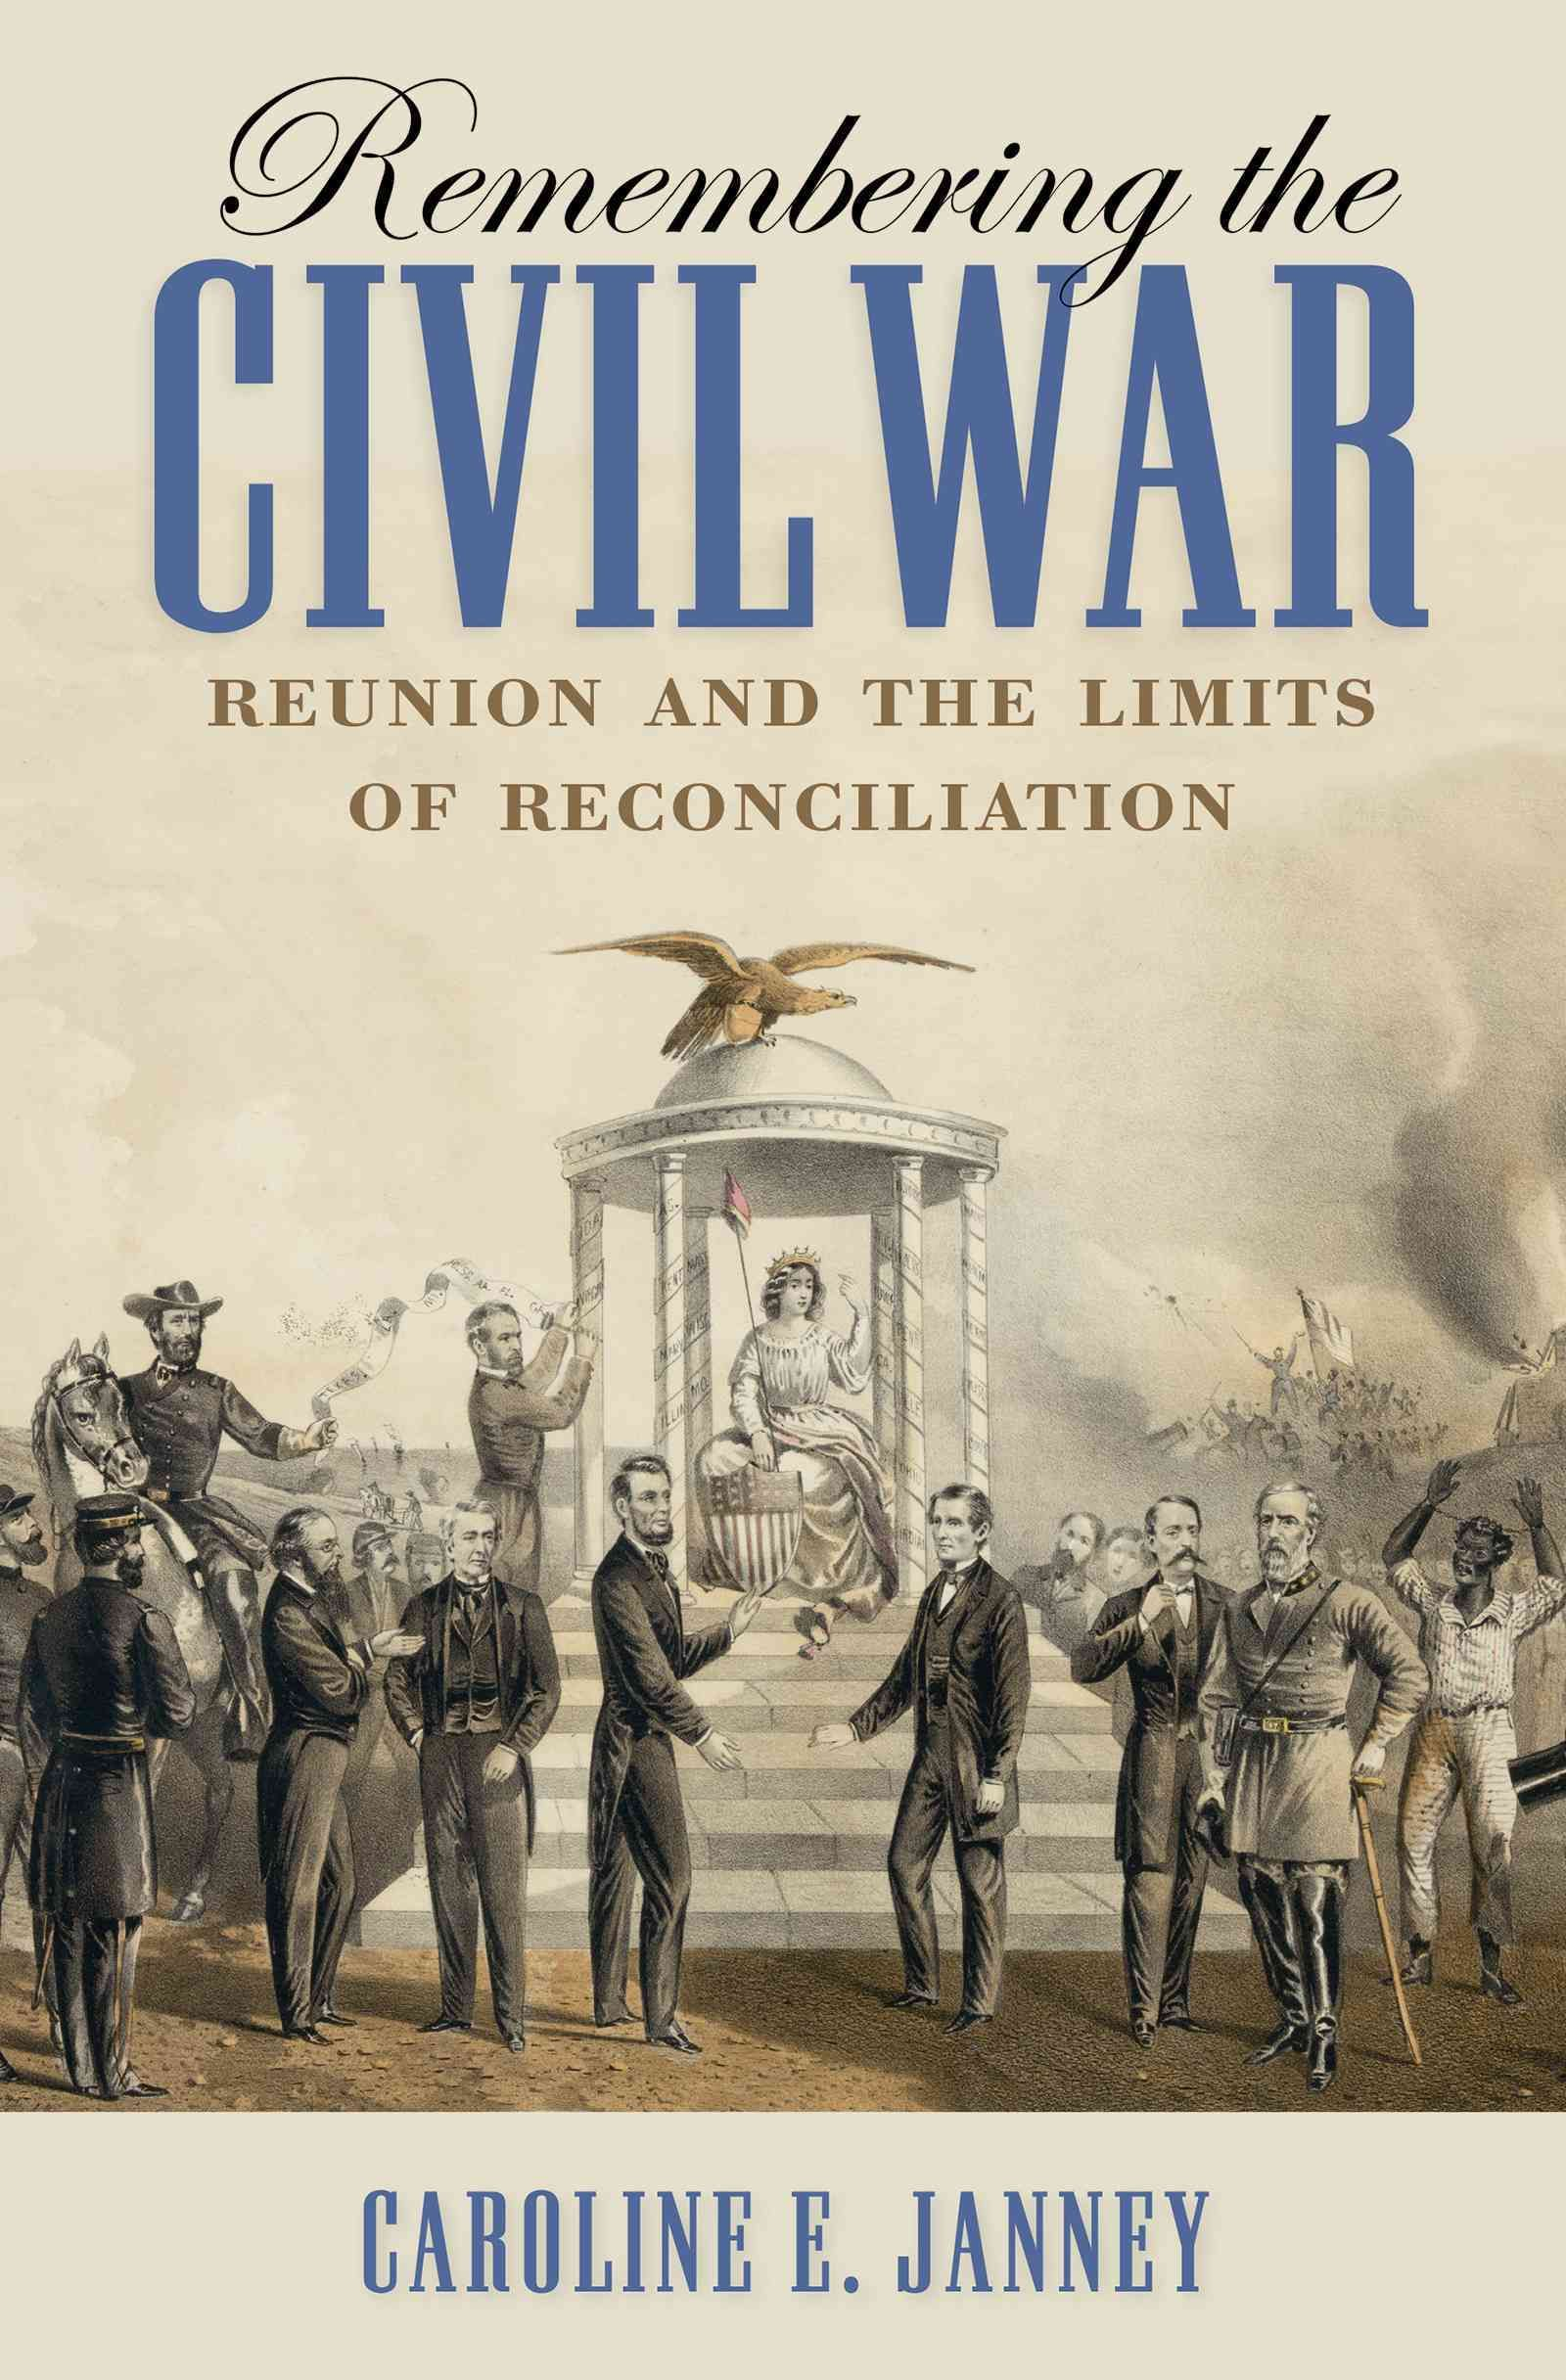 Remembering the Civil War: Reunion and the Limits of Reconciliation